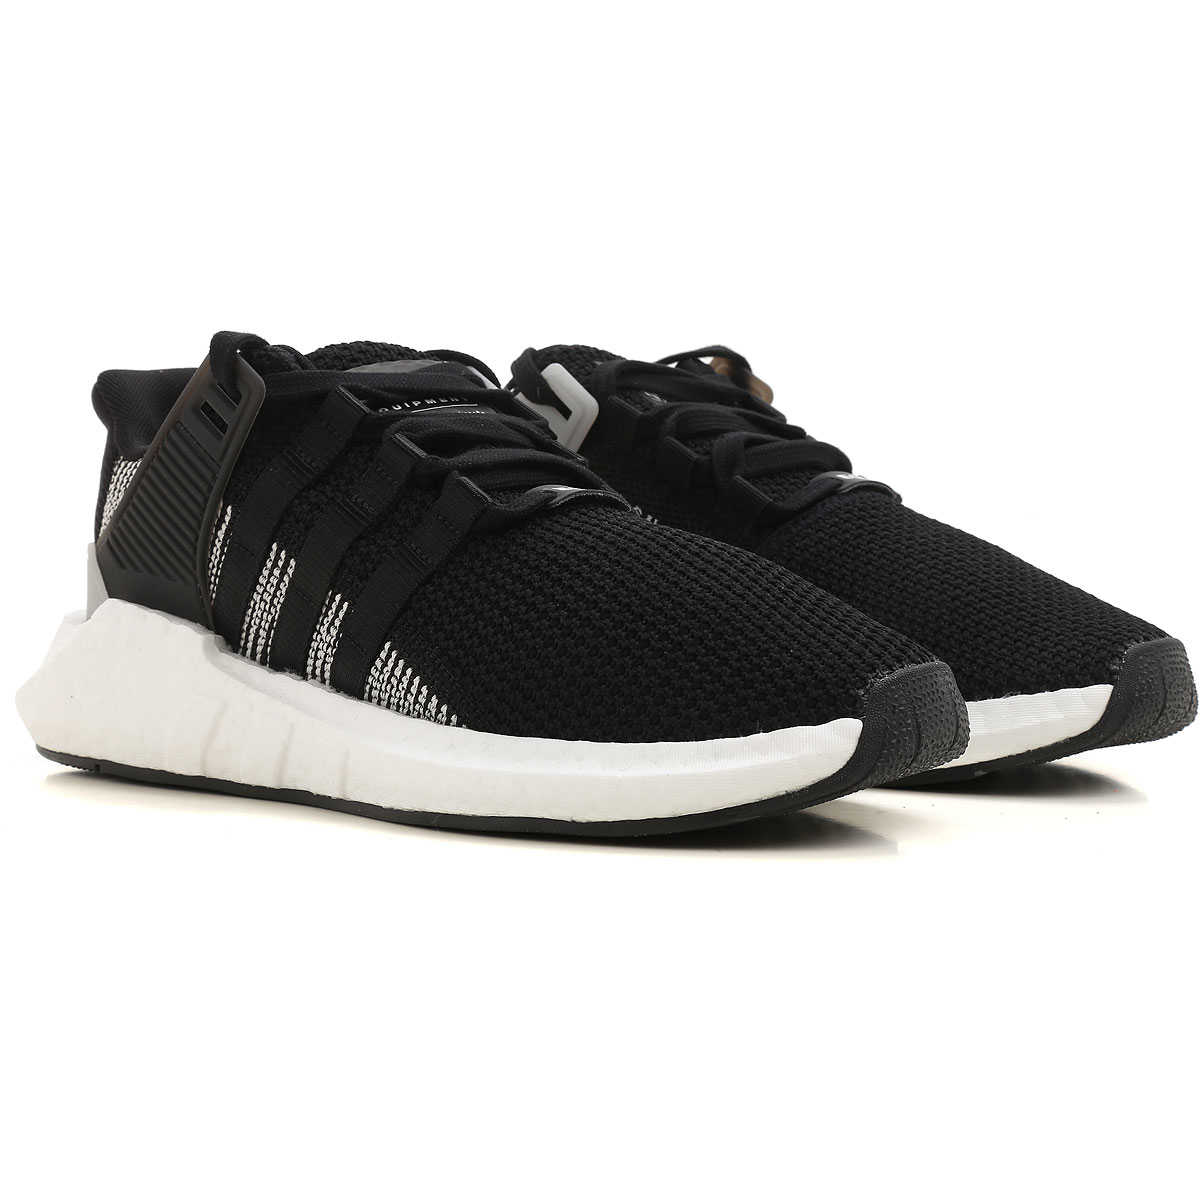 Adidas Sneakers for Men On Sale in Outlet